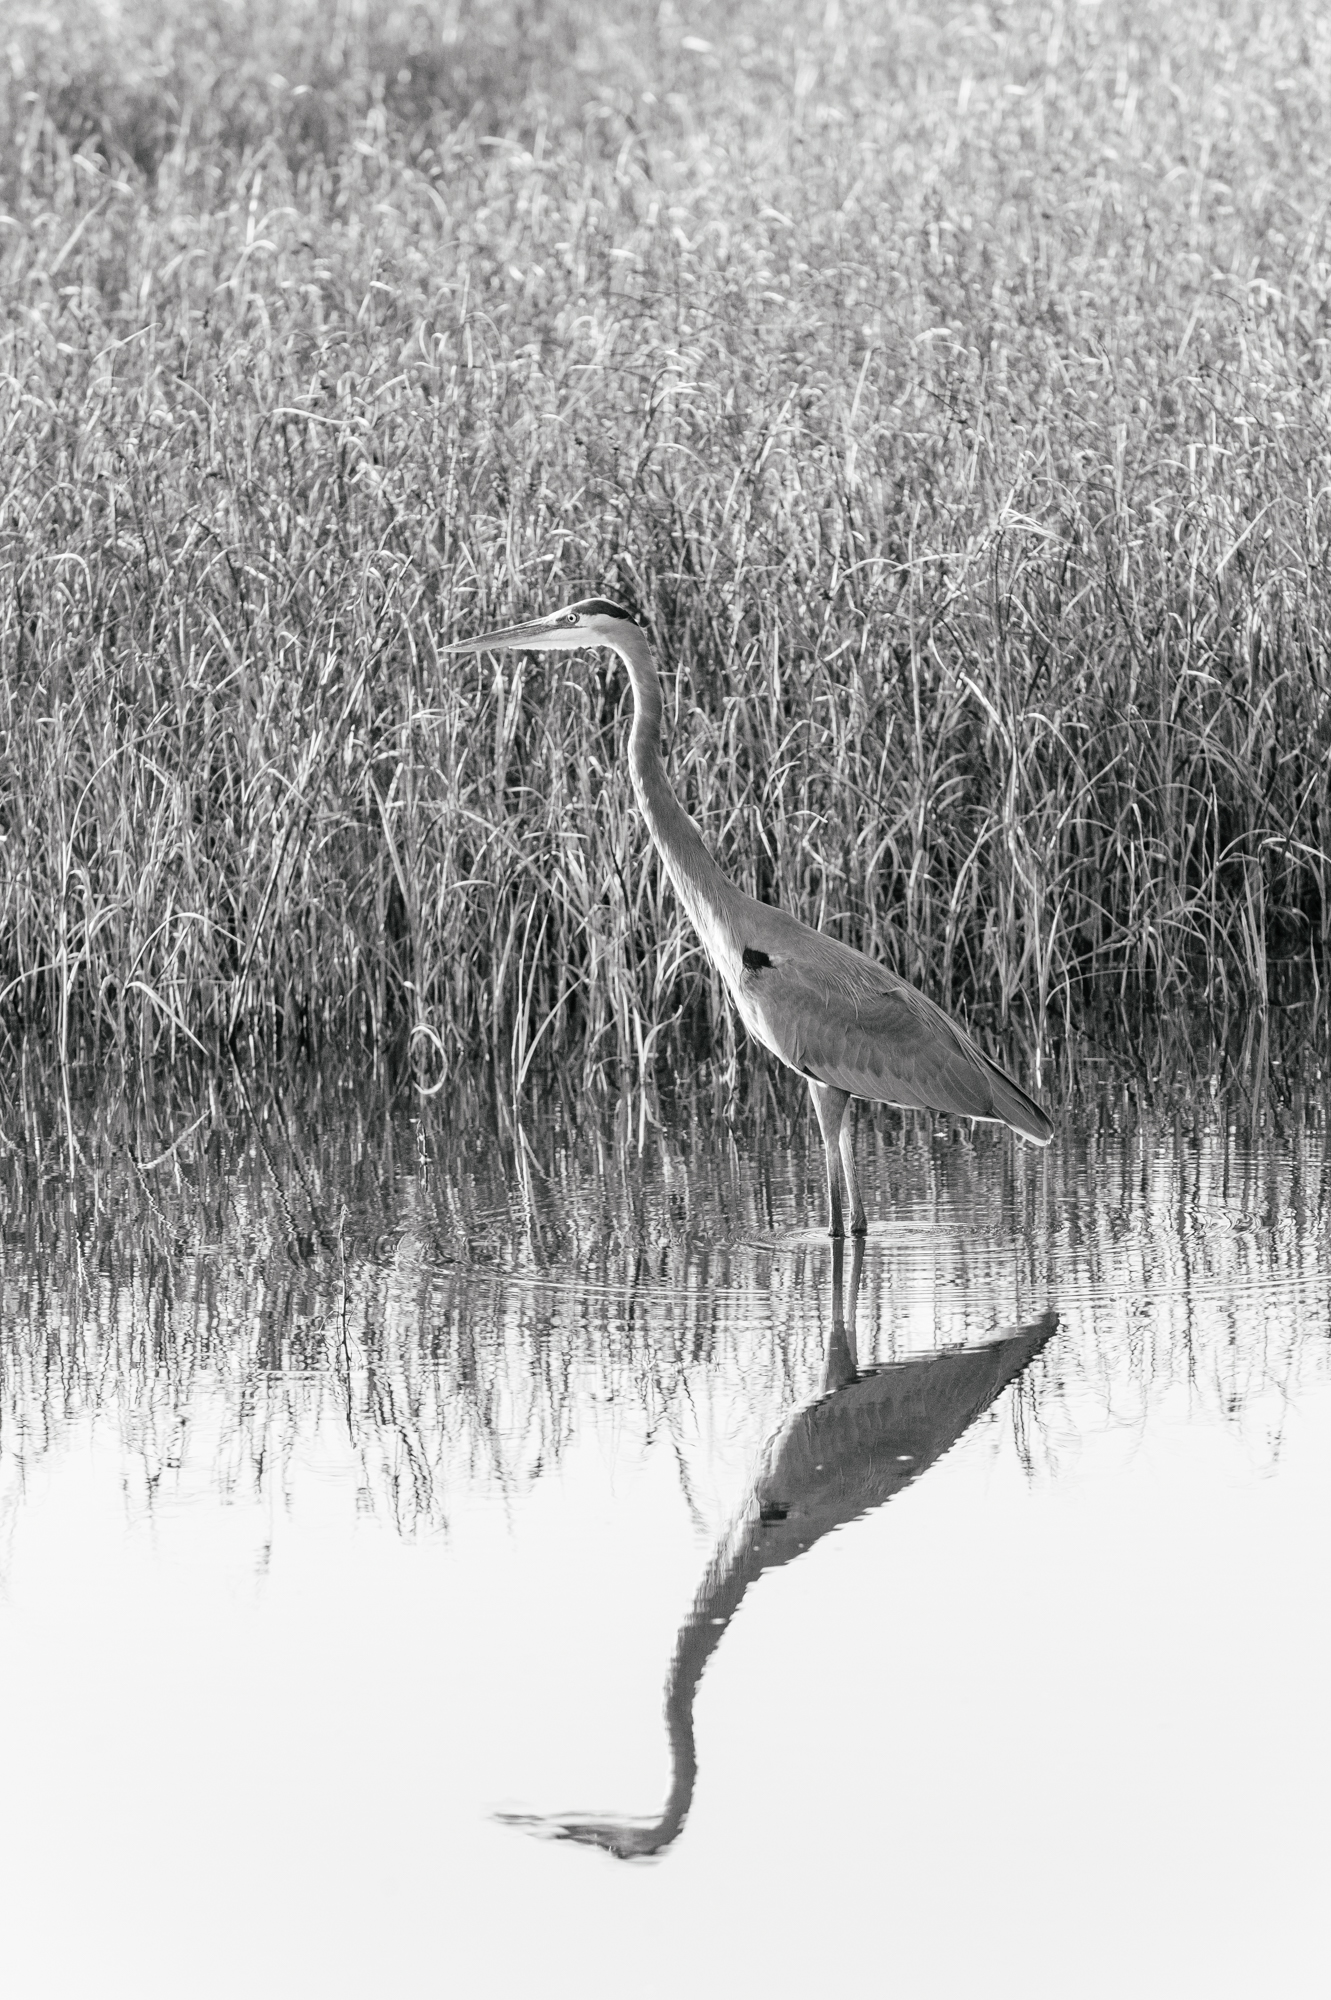 Heron In The Grasses 2